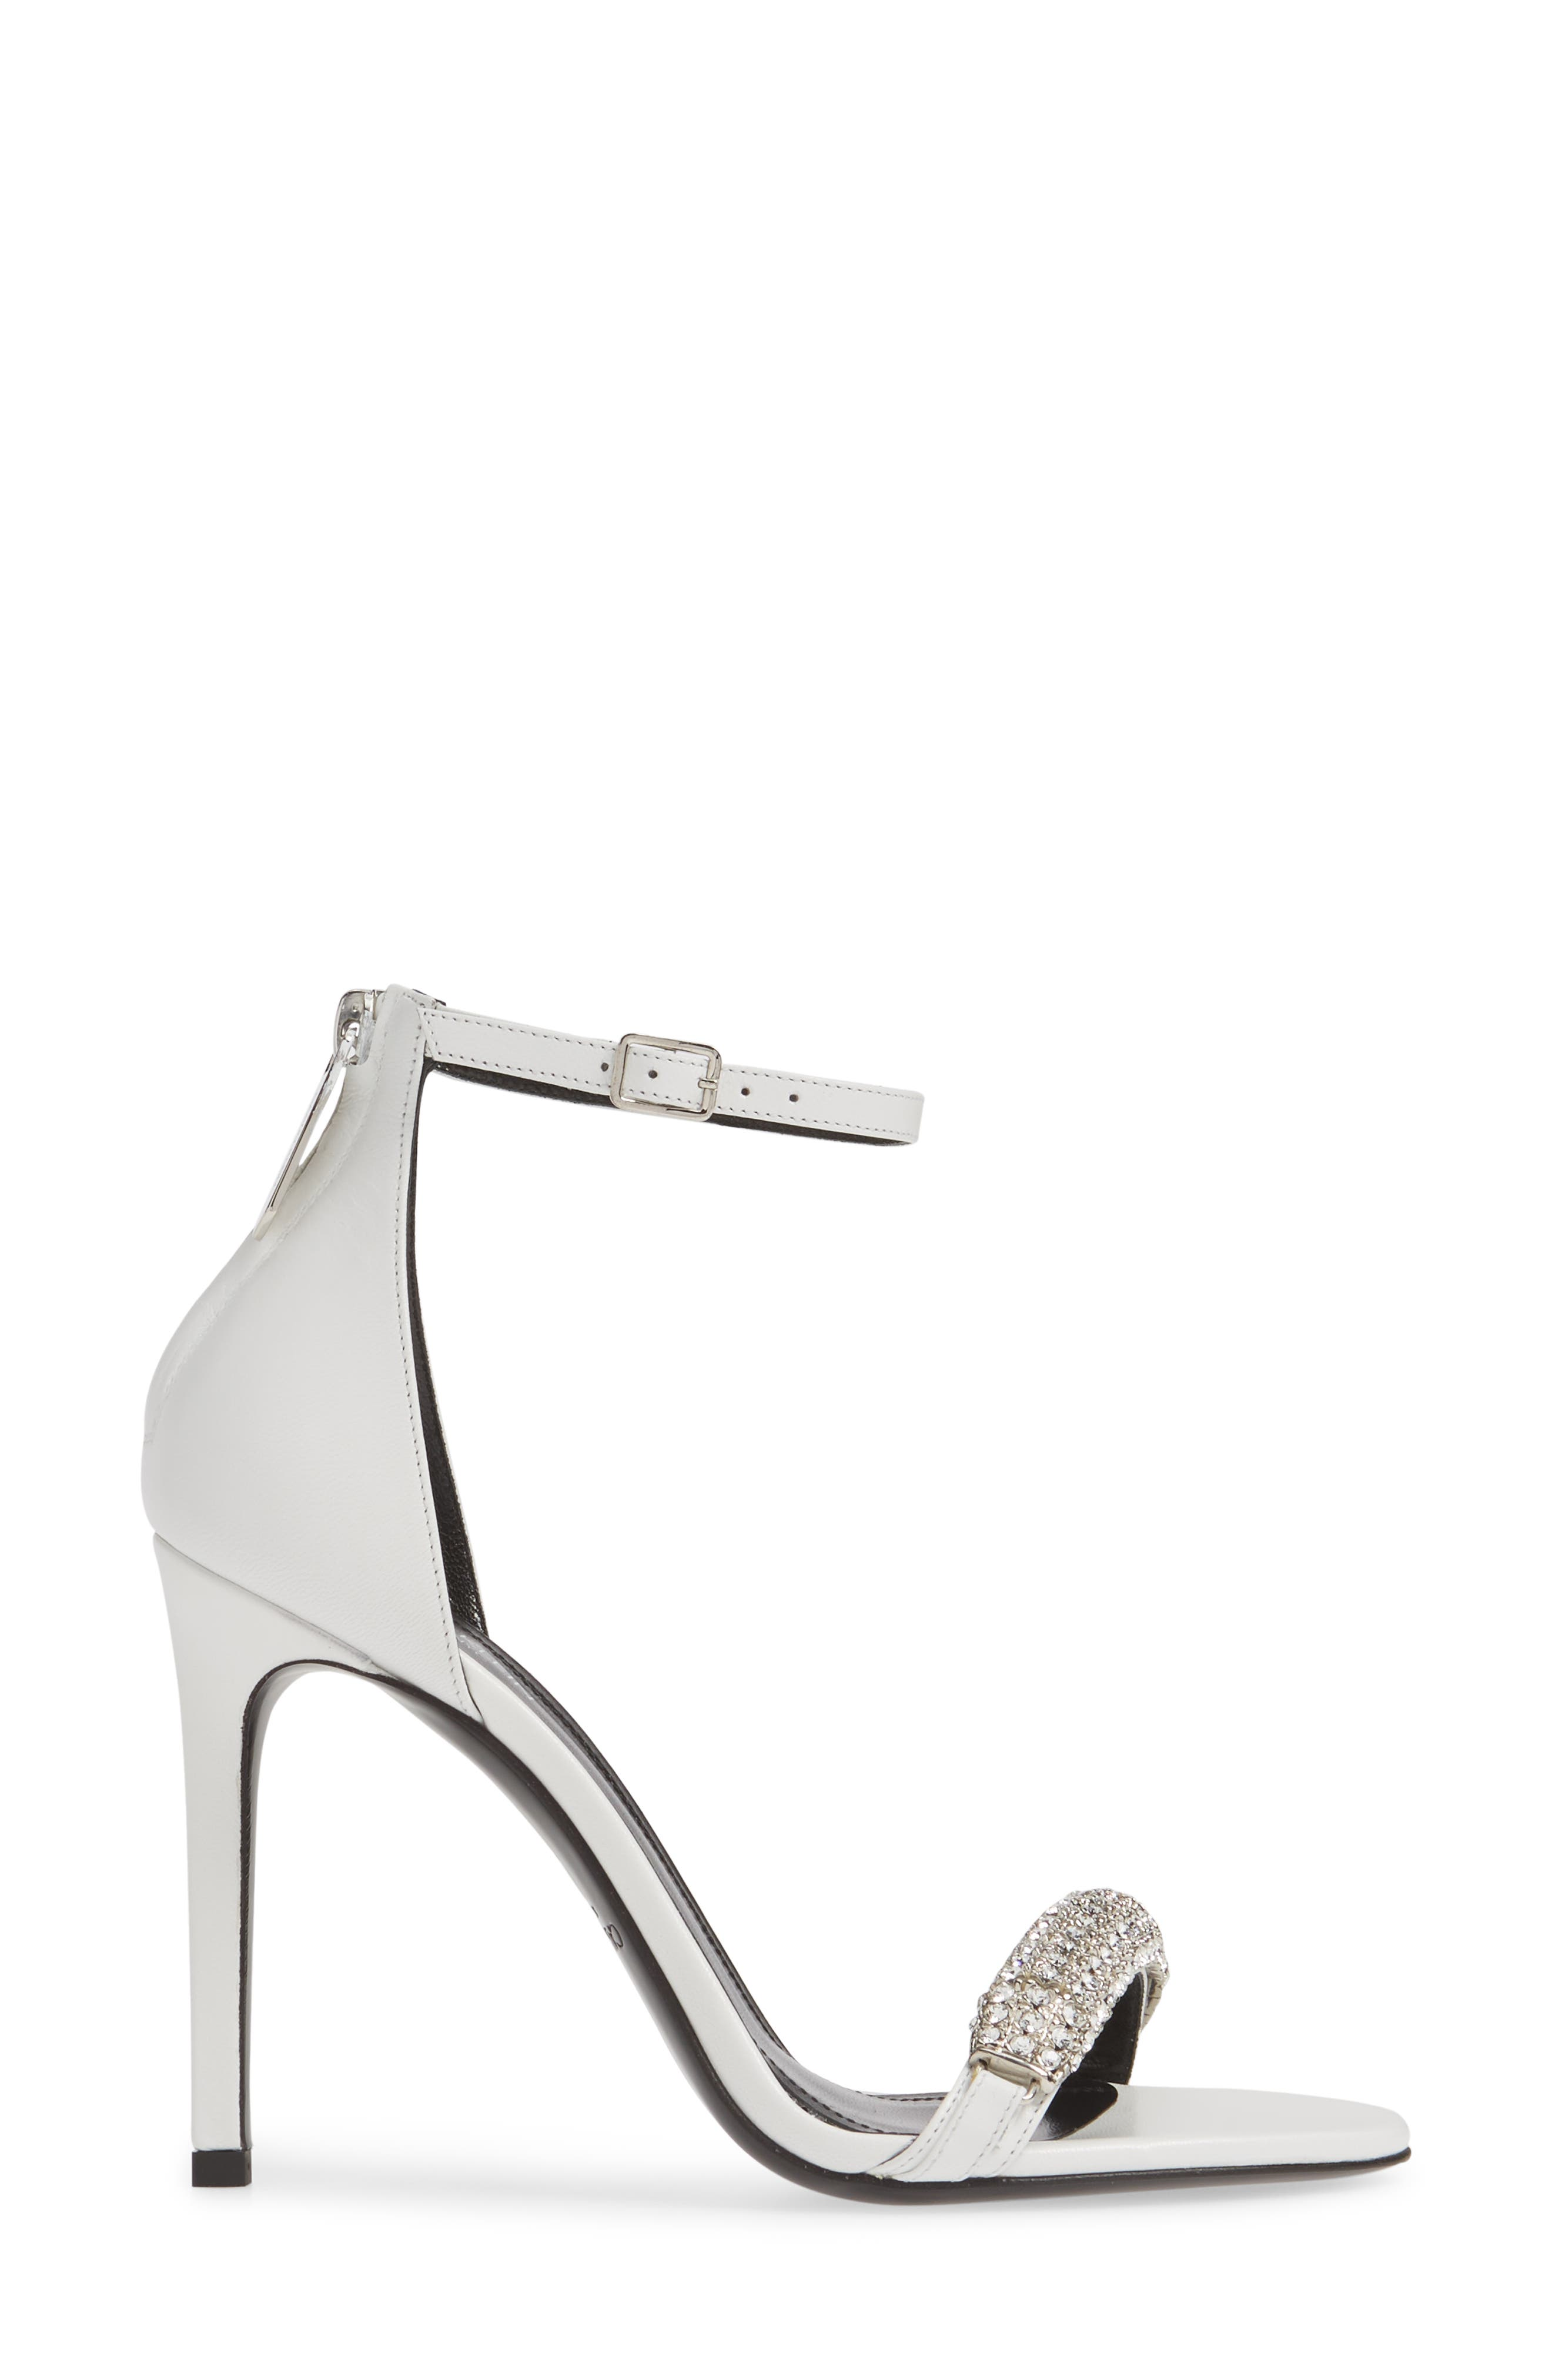 CALVIN KLEIN 205W39NYC, Camelle Sandal, Alternate thumbnail 3, color, WHITE